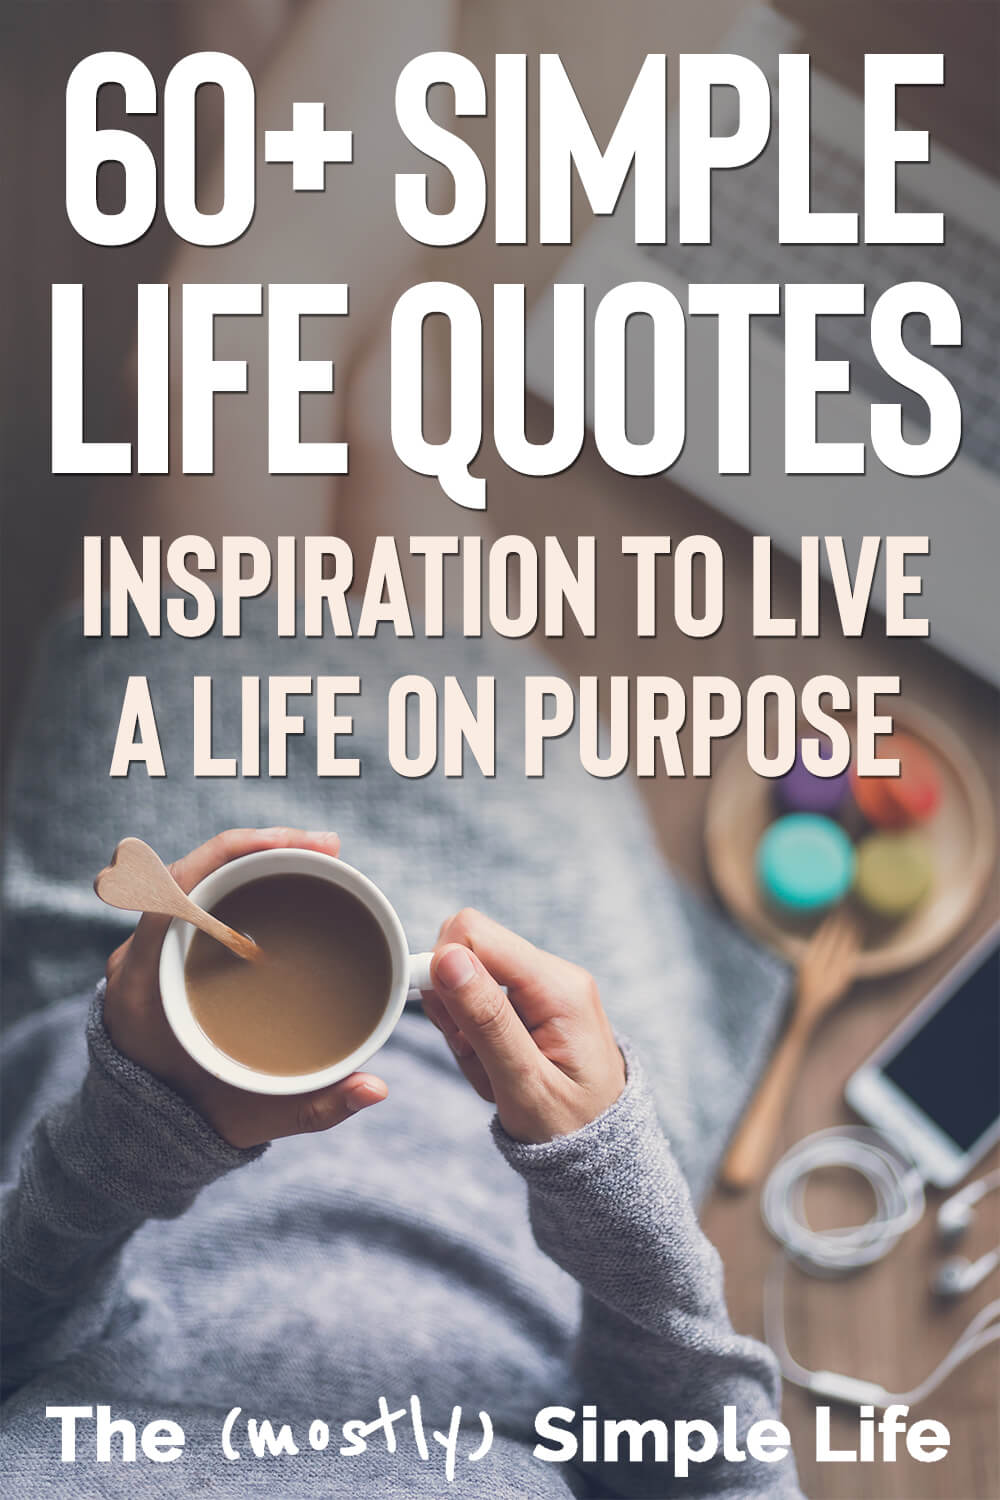 100 Simple Life Quotes to Inspire You to a Simple & Happy Life